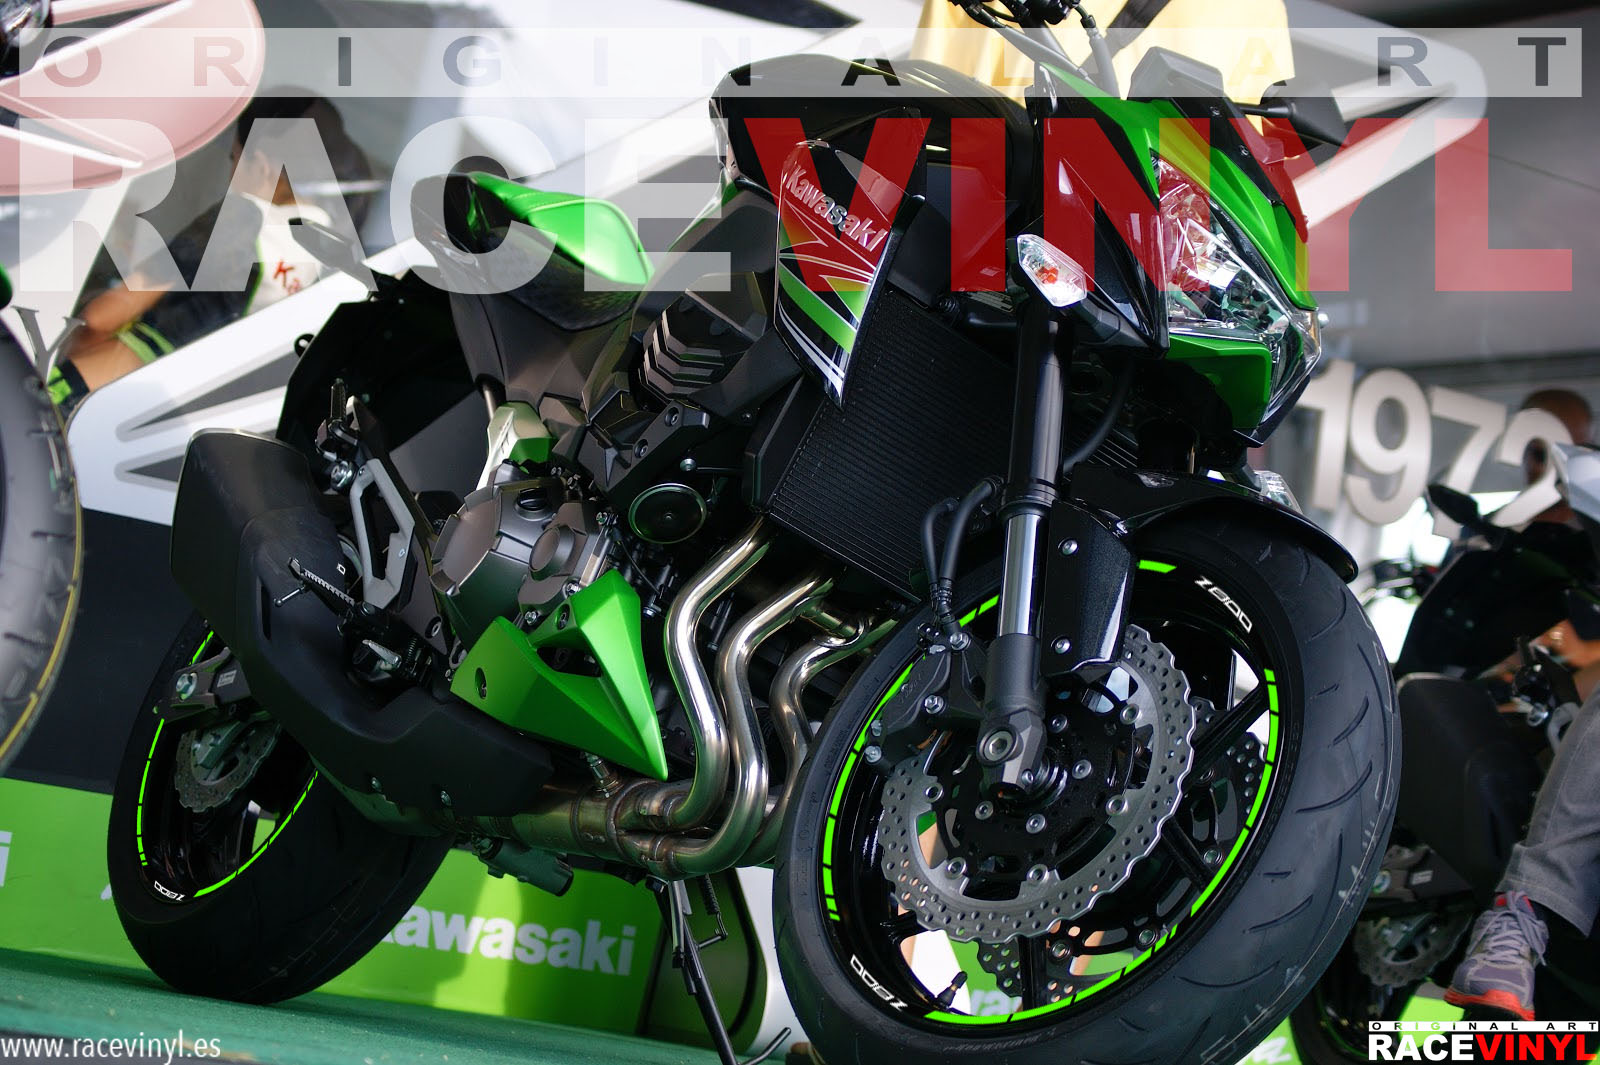 Kawasaki Z800 with Model rim Stickers